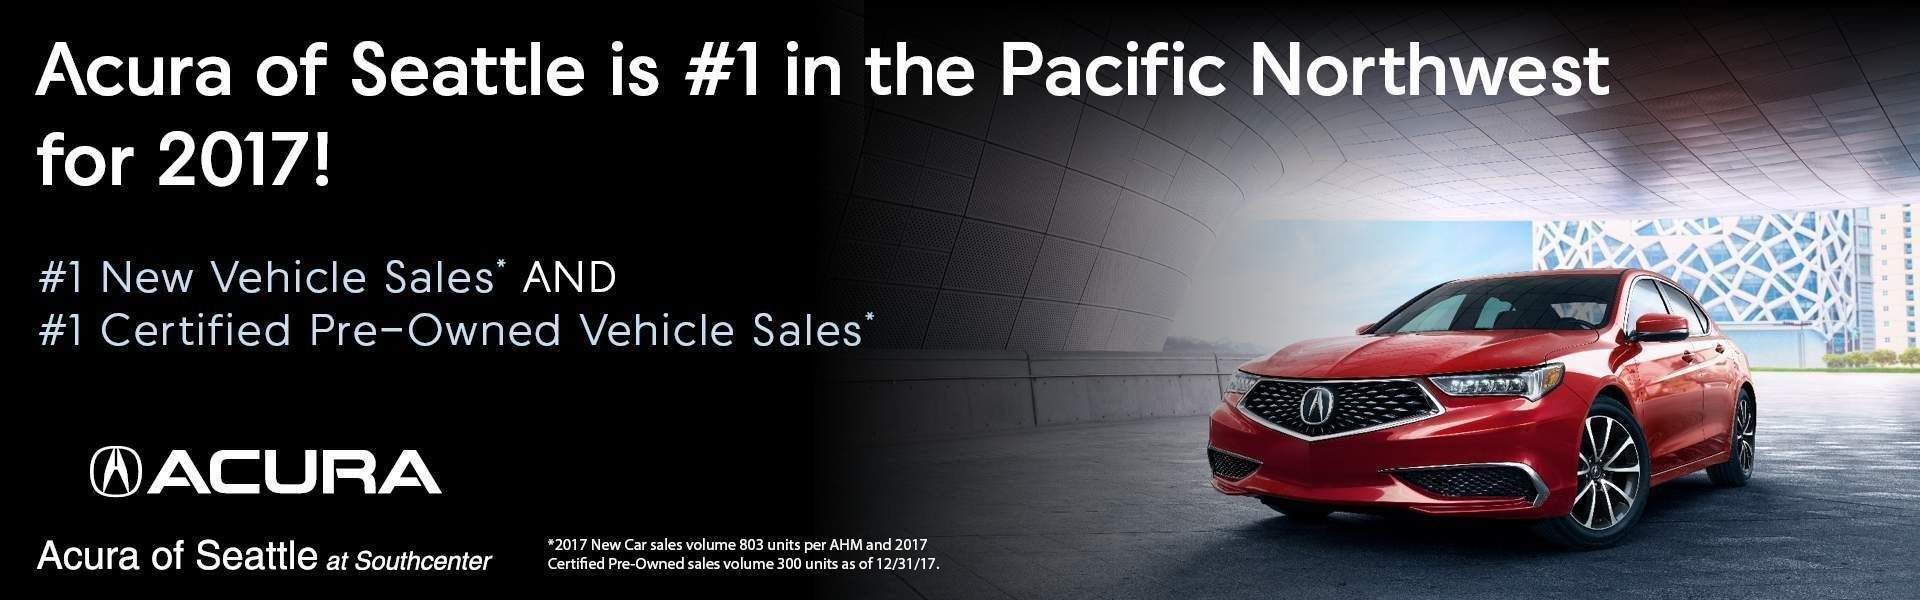 Acura of Seattle #1 in New and Certified Sales